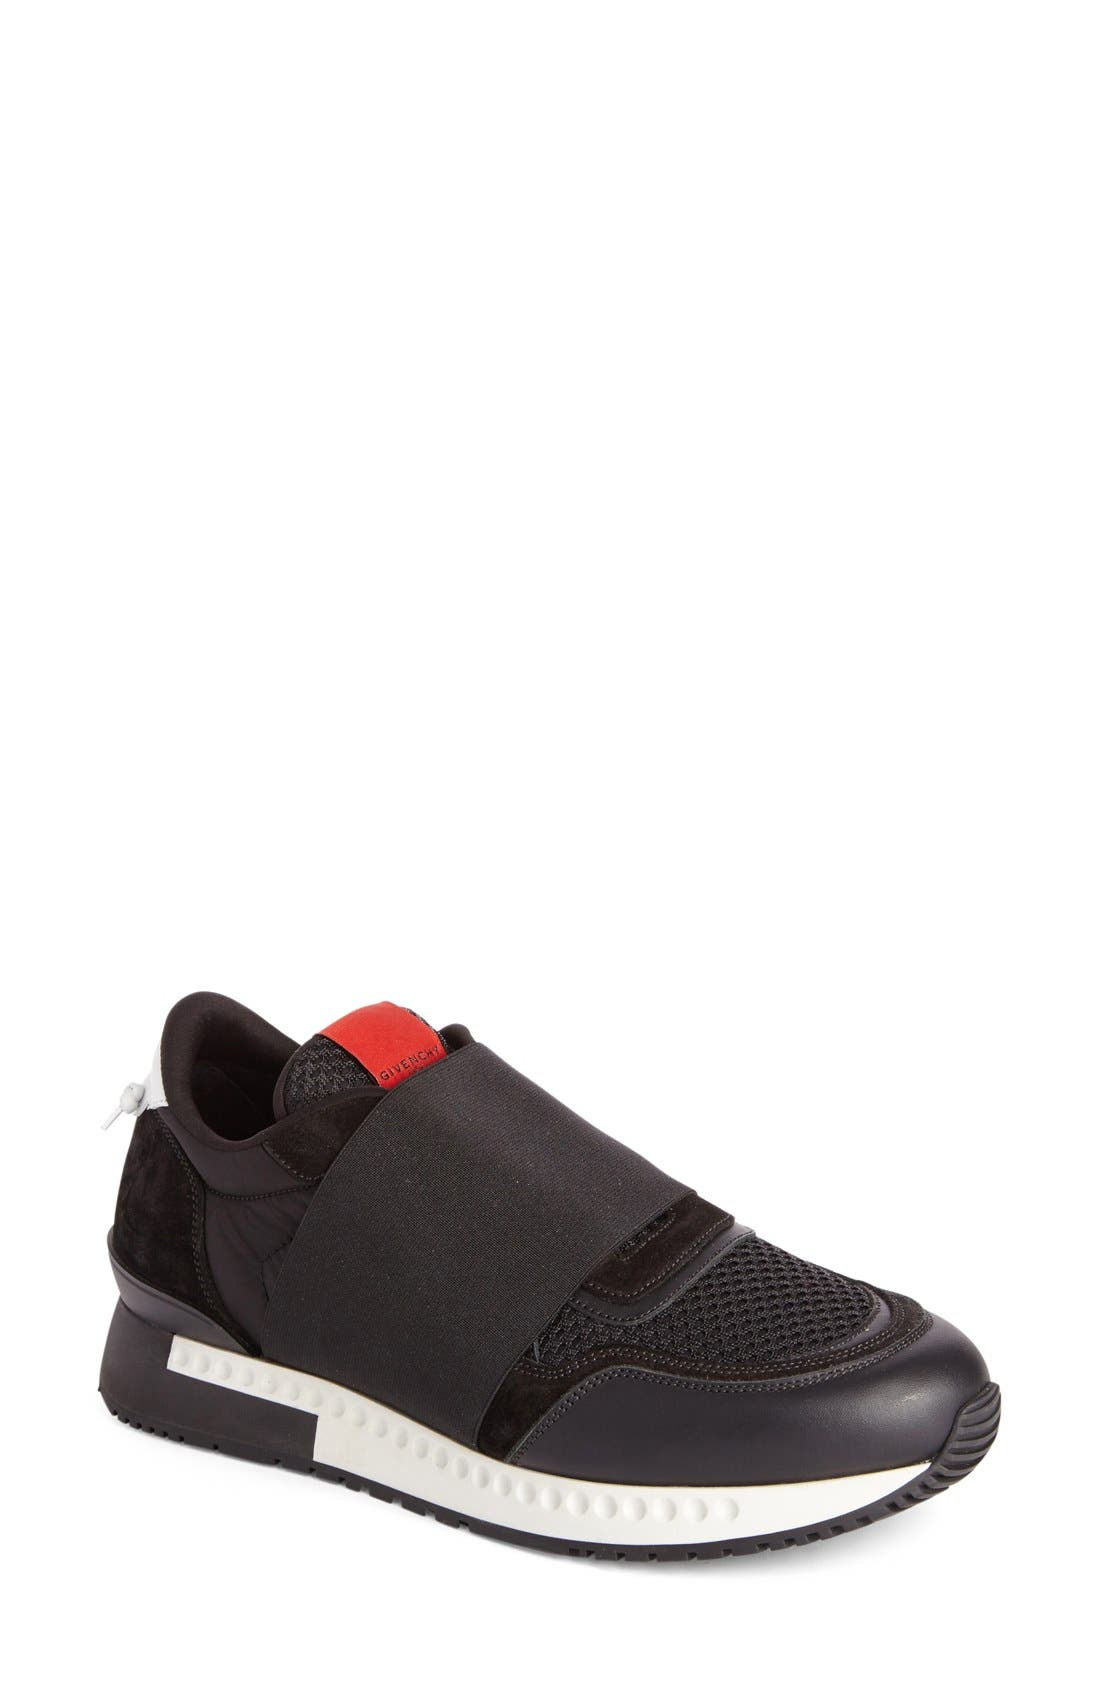 Givenchy Slip-On Sneaker (Men)